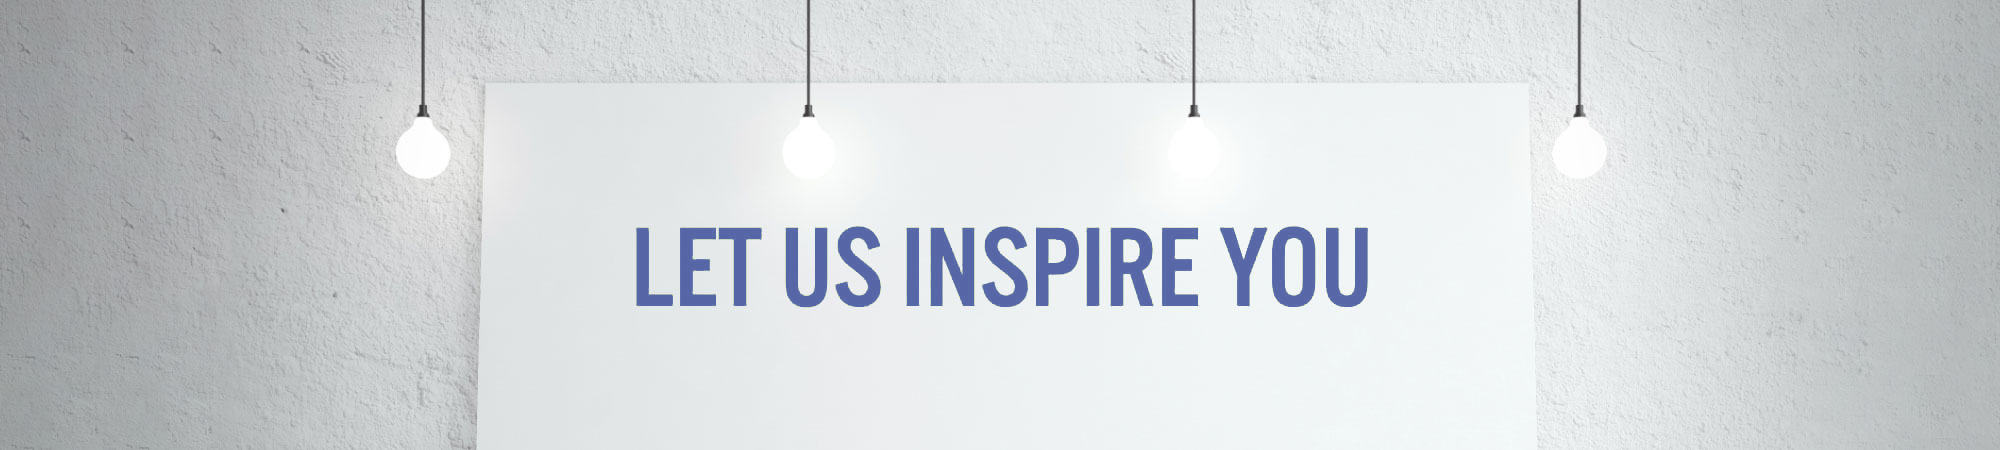 Let Us Inspire You